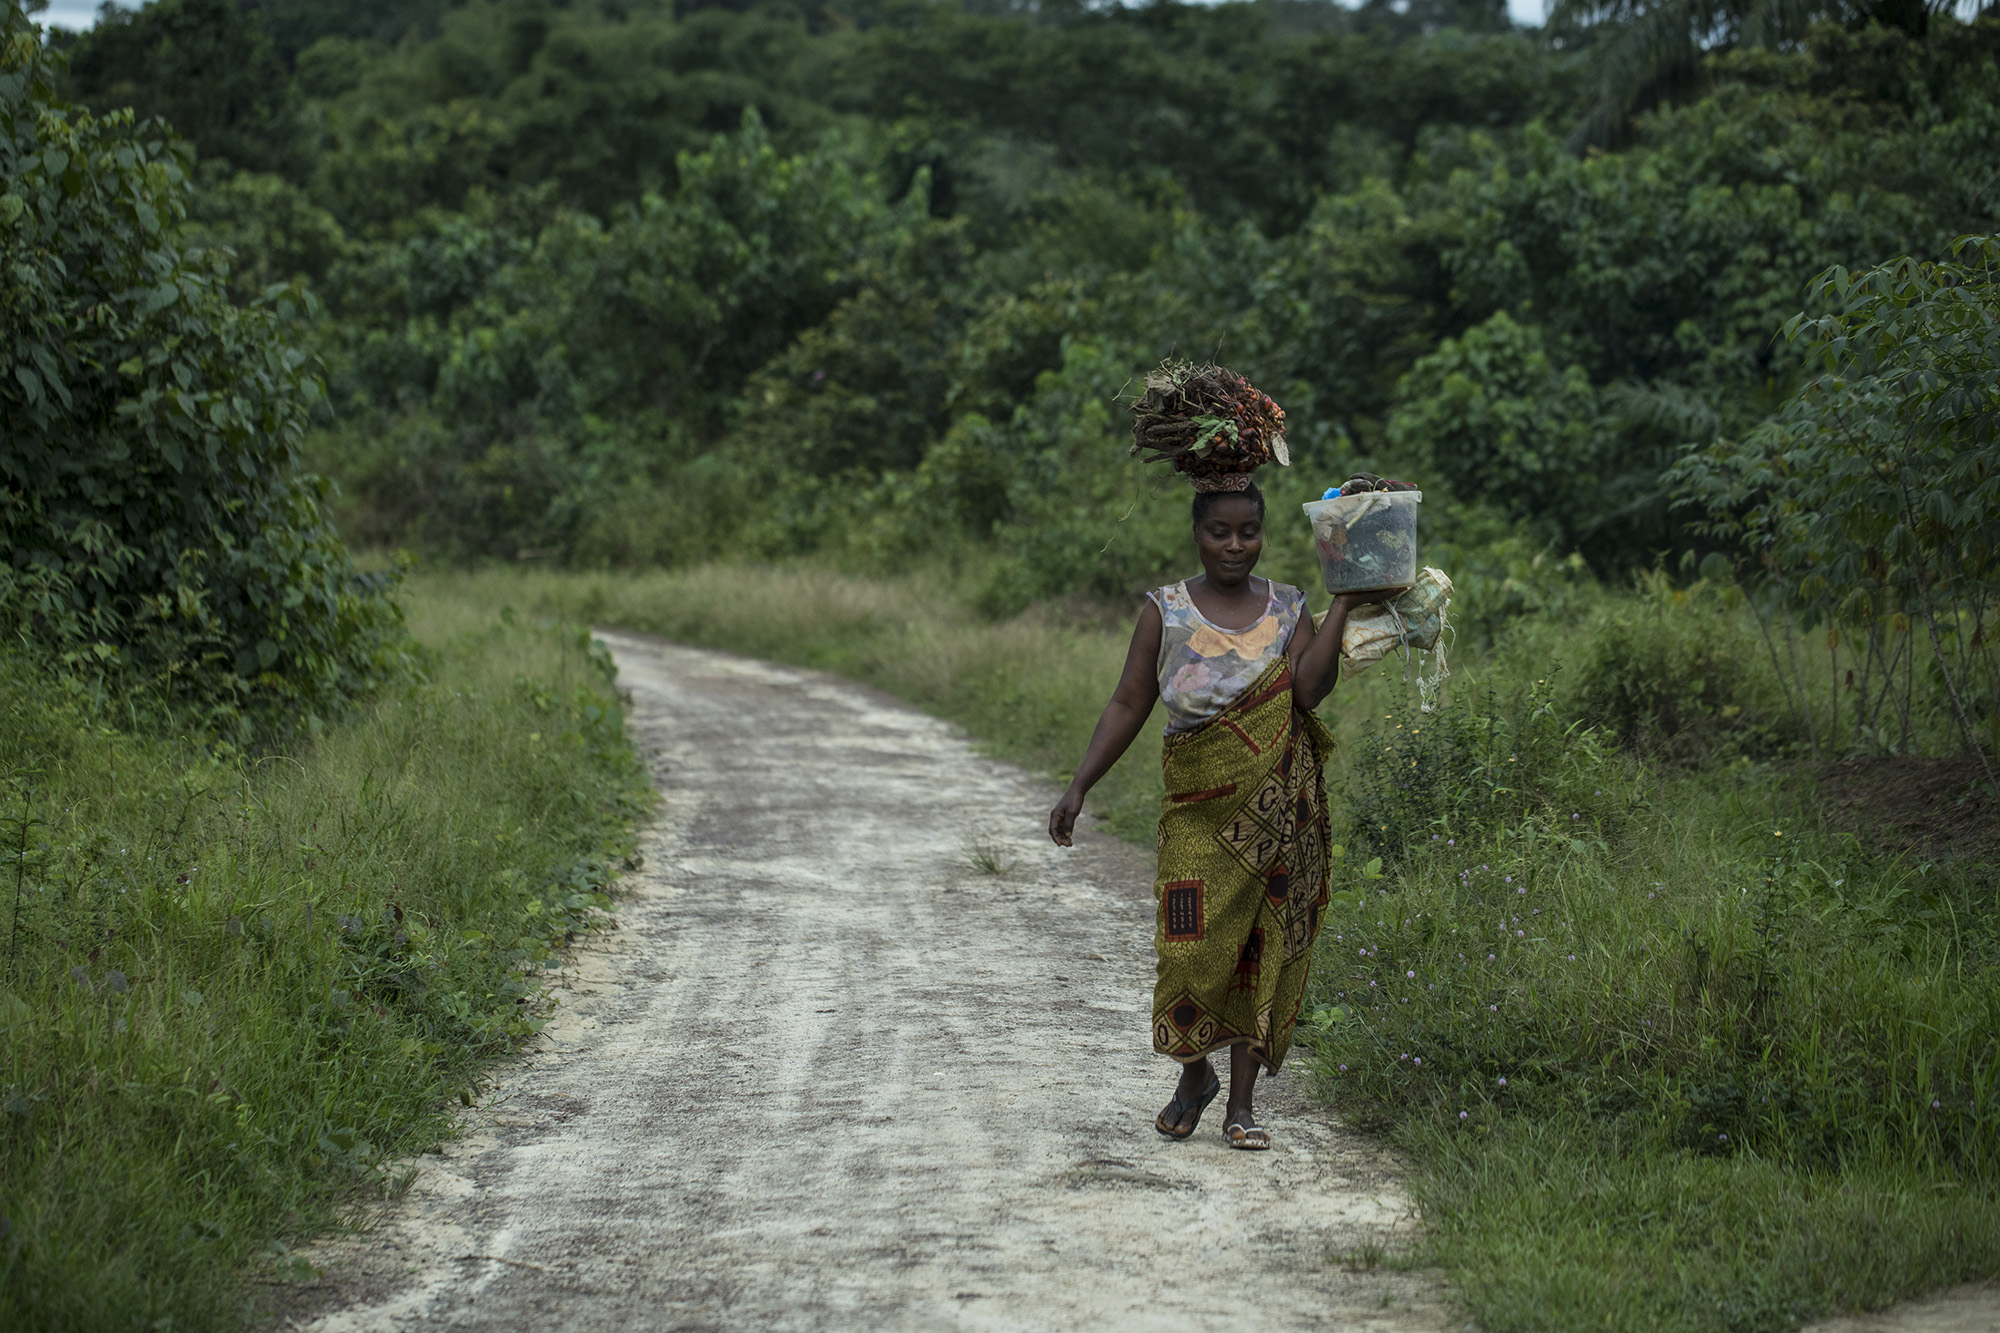 A woman walks down a road in Blayah Town, where the Jogbahn Clan reside.The Jogbahn Clan fought against the British-owned company Equatorial Palm Oil (EPO) when they tried to take over their land in 2013. The people in the community depend on the land for their livelihoods. The Sustainable Development Institute (SDI) started to help the community by submitting a formal complaint to the to the Roundtable on Sustainable Palm Oil (RSPO). SDI taught the clan about land rights and resisting with non-violence. THE RSPO determined that the land EPO was using belonged to the clan. SGI trained the community how to map their land and boundaries were created that EPO accepted not to cross.